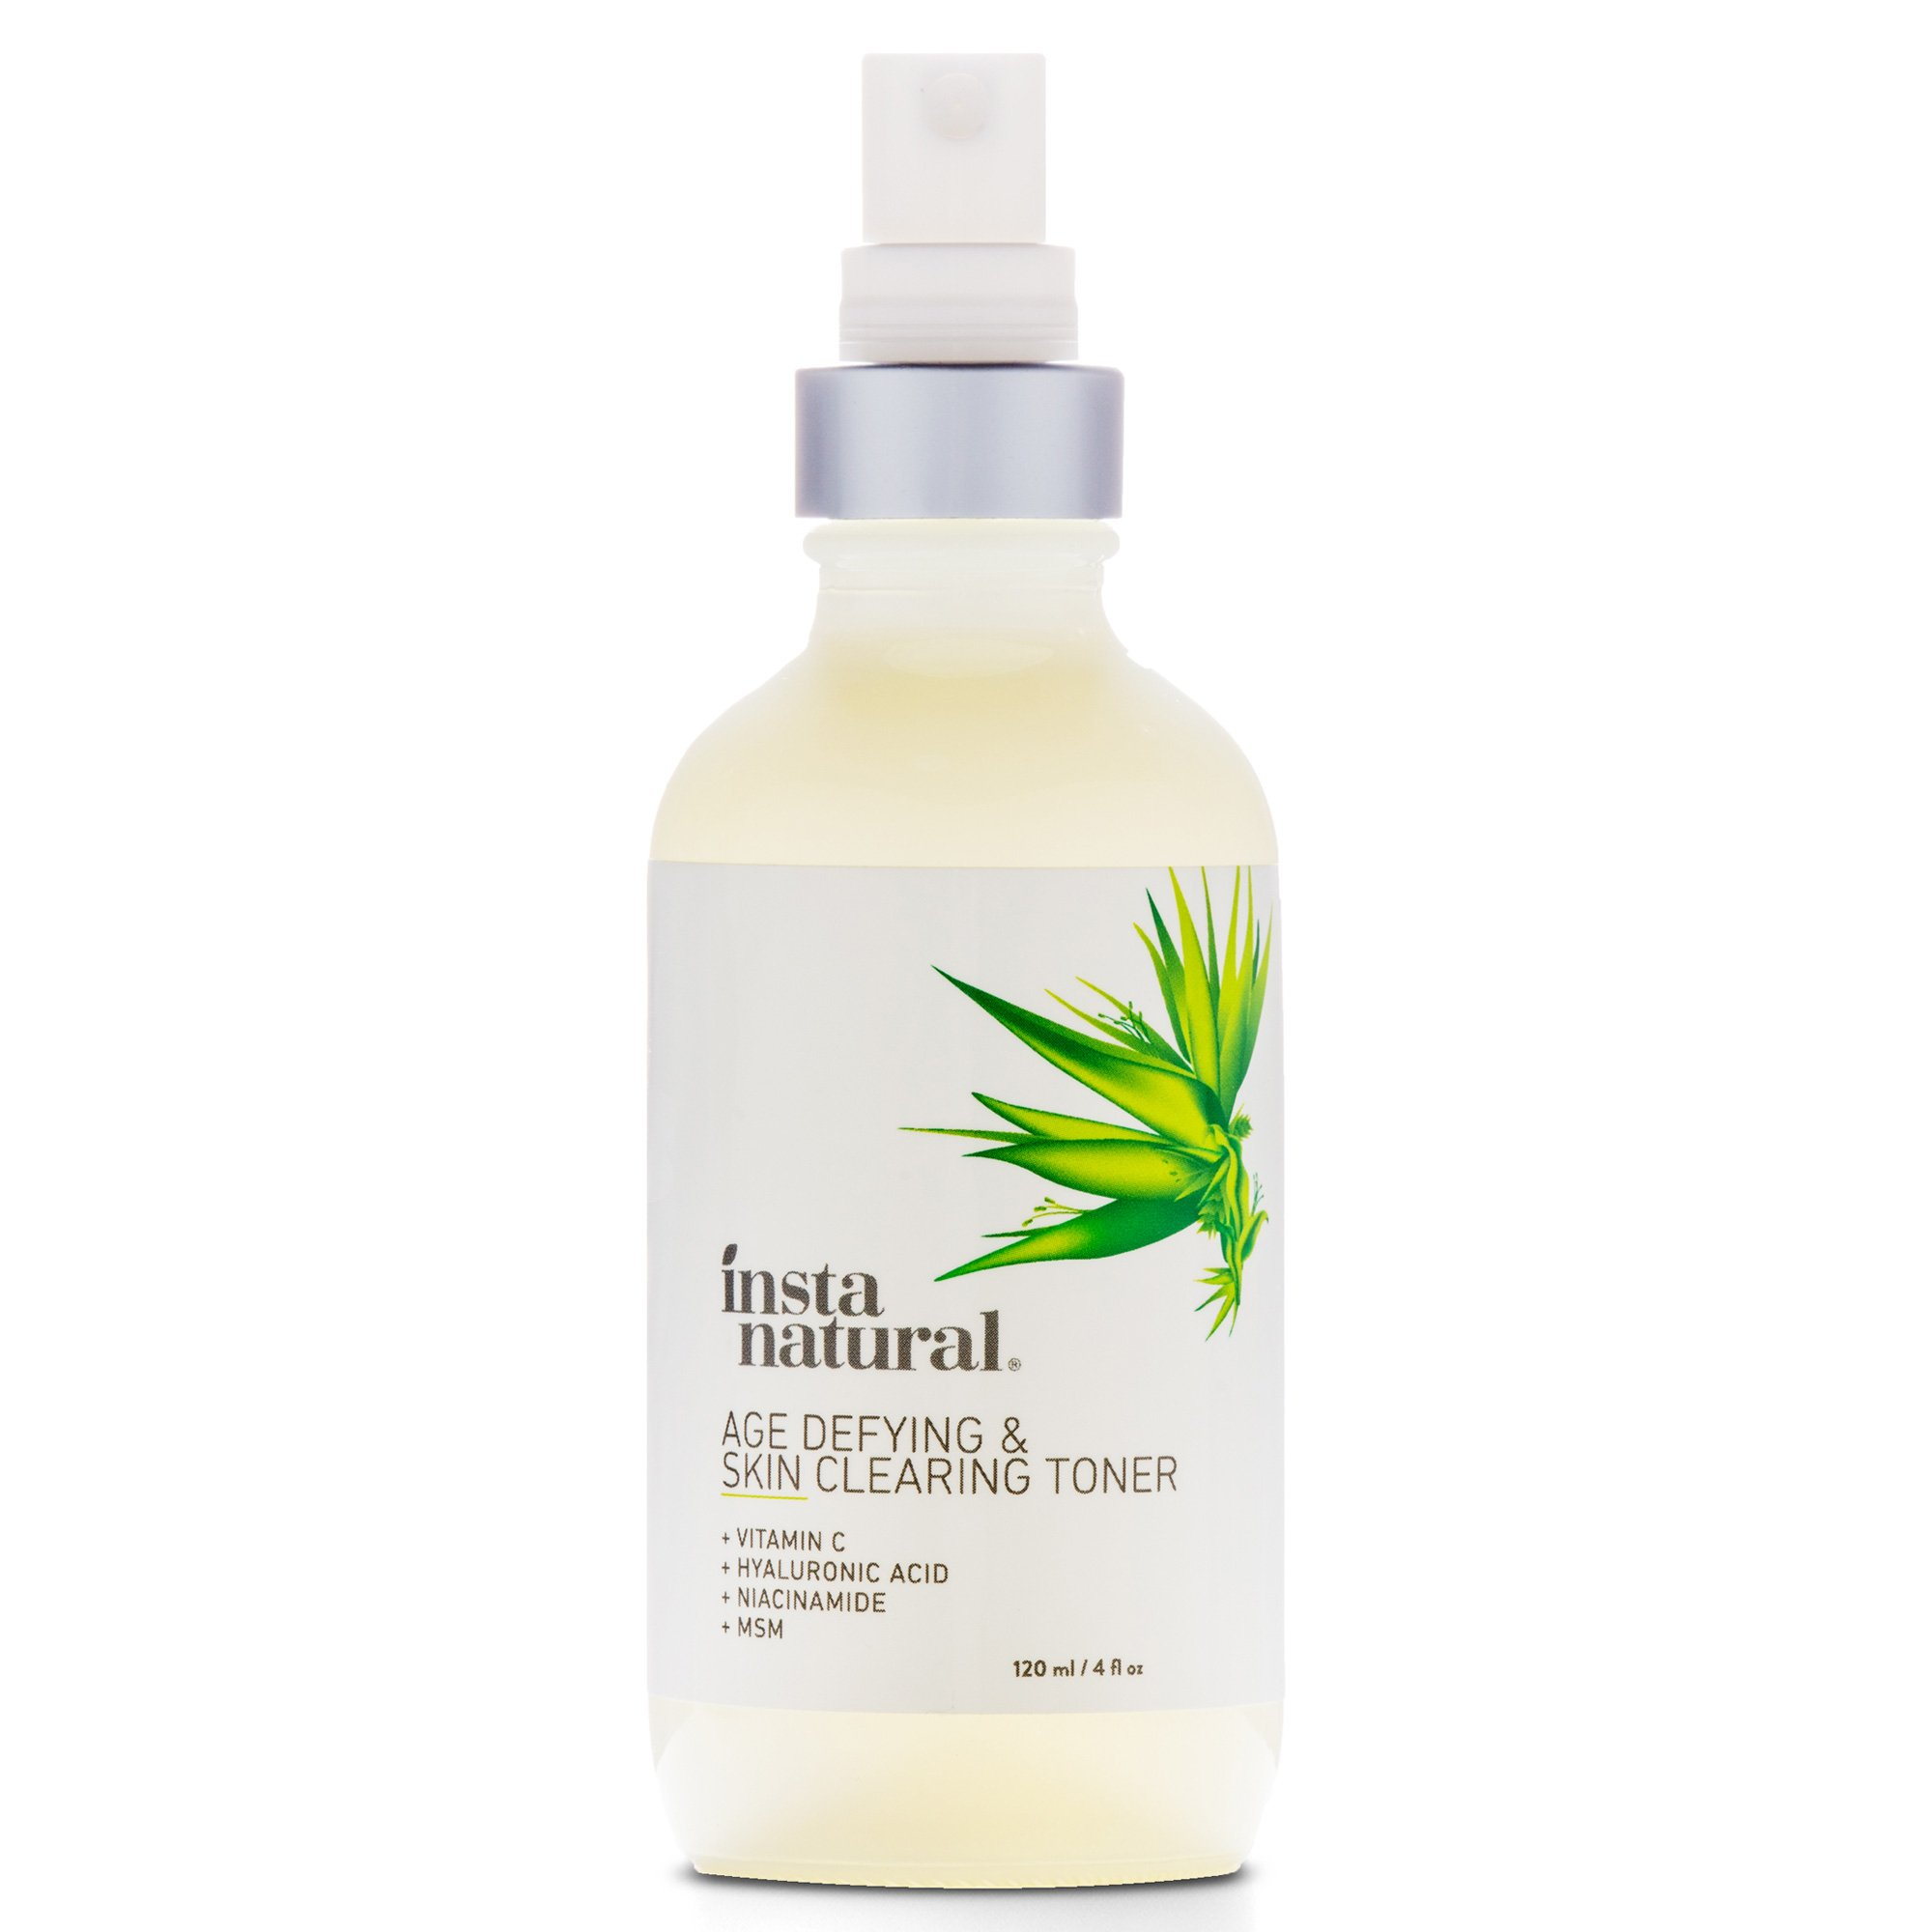 Vitamin C Skin Clearing Face Toner - Natural & Organic Anti Aging Formula with Salicylic Acid & Hyaluronic Acid - Helps Wrinkle, Dark Spot, Fine Lines - Safe for Sensitive Skin - InstaNatural - 4 oz by InstaNatural (Image #2)